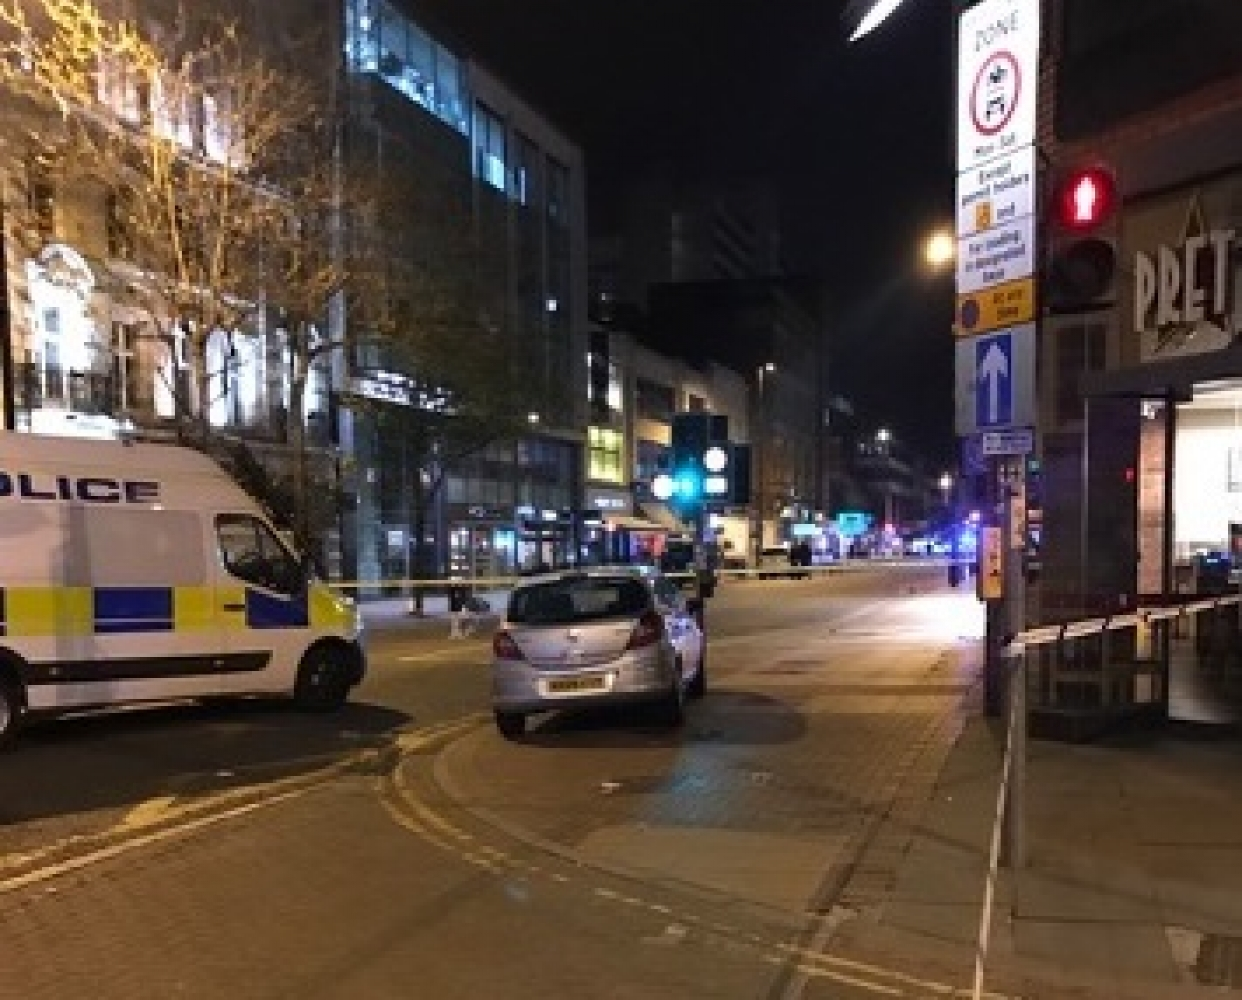 Living Room Bar Manchester Deansgate Bar Targeted In Another Shooting Confidentials Manchester